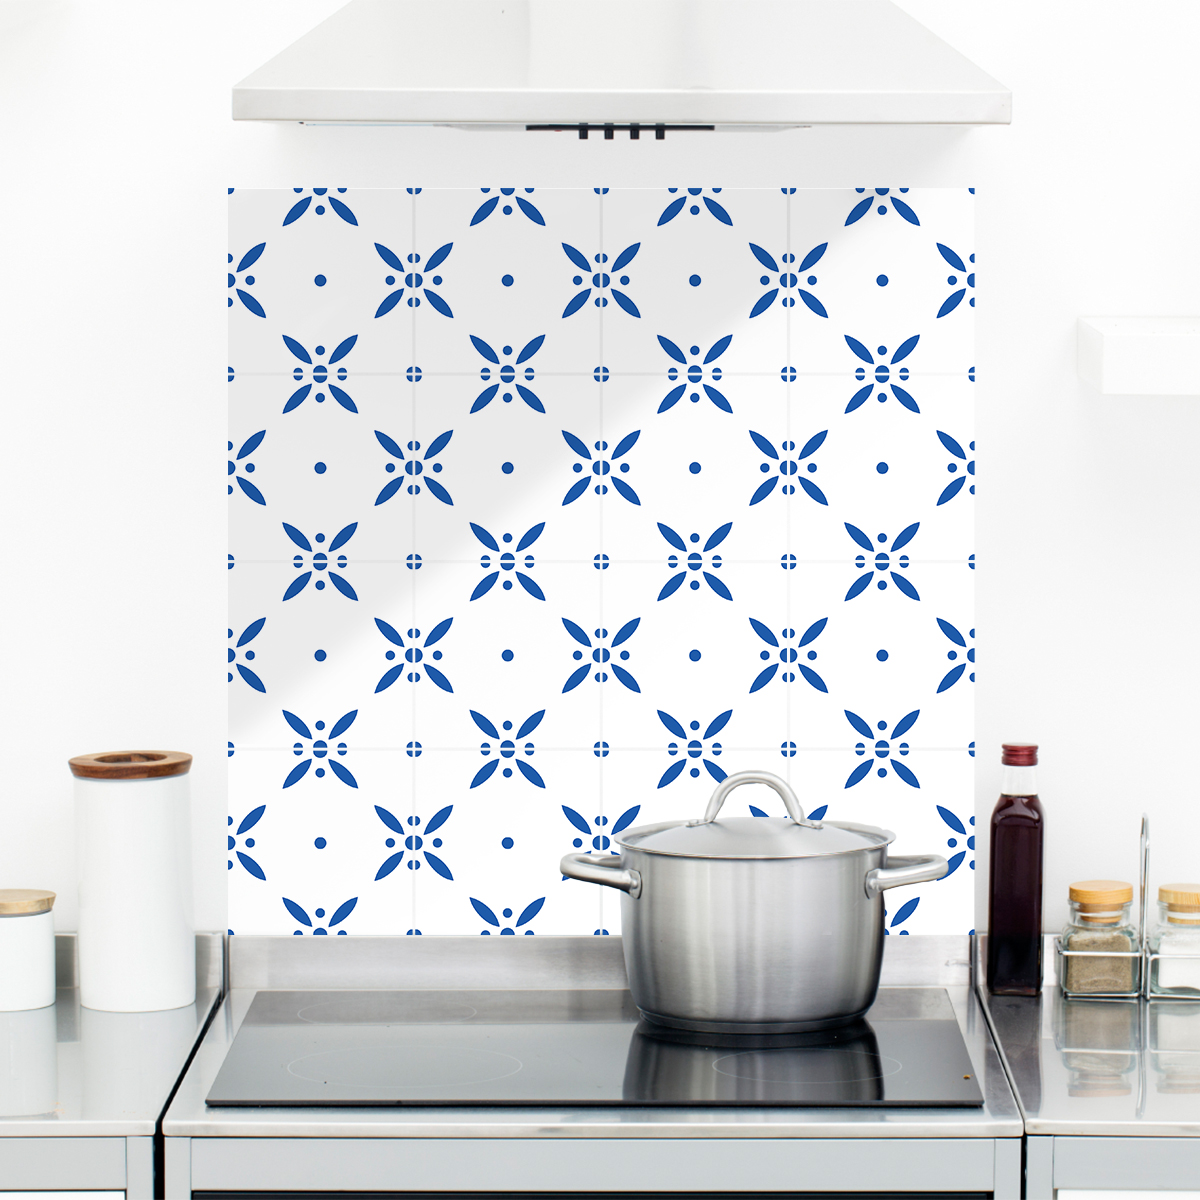 9 stickers carrelages azulejos artino cuisine carrelages ambiance sticker. Black Bedroom Furniture Sets. Home Design Ideas